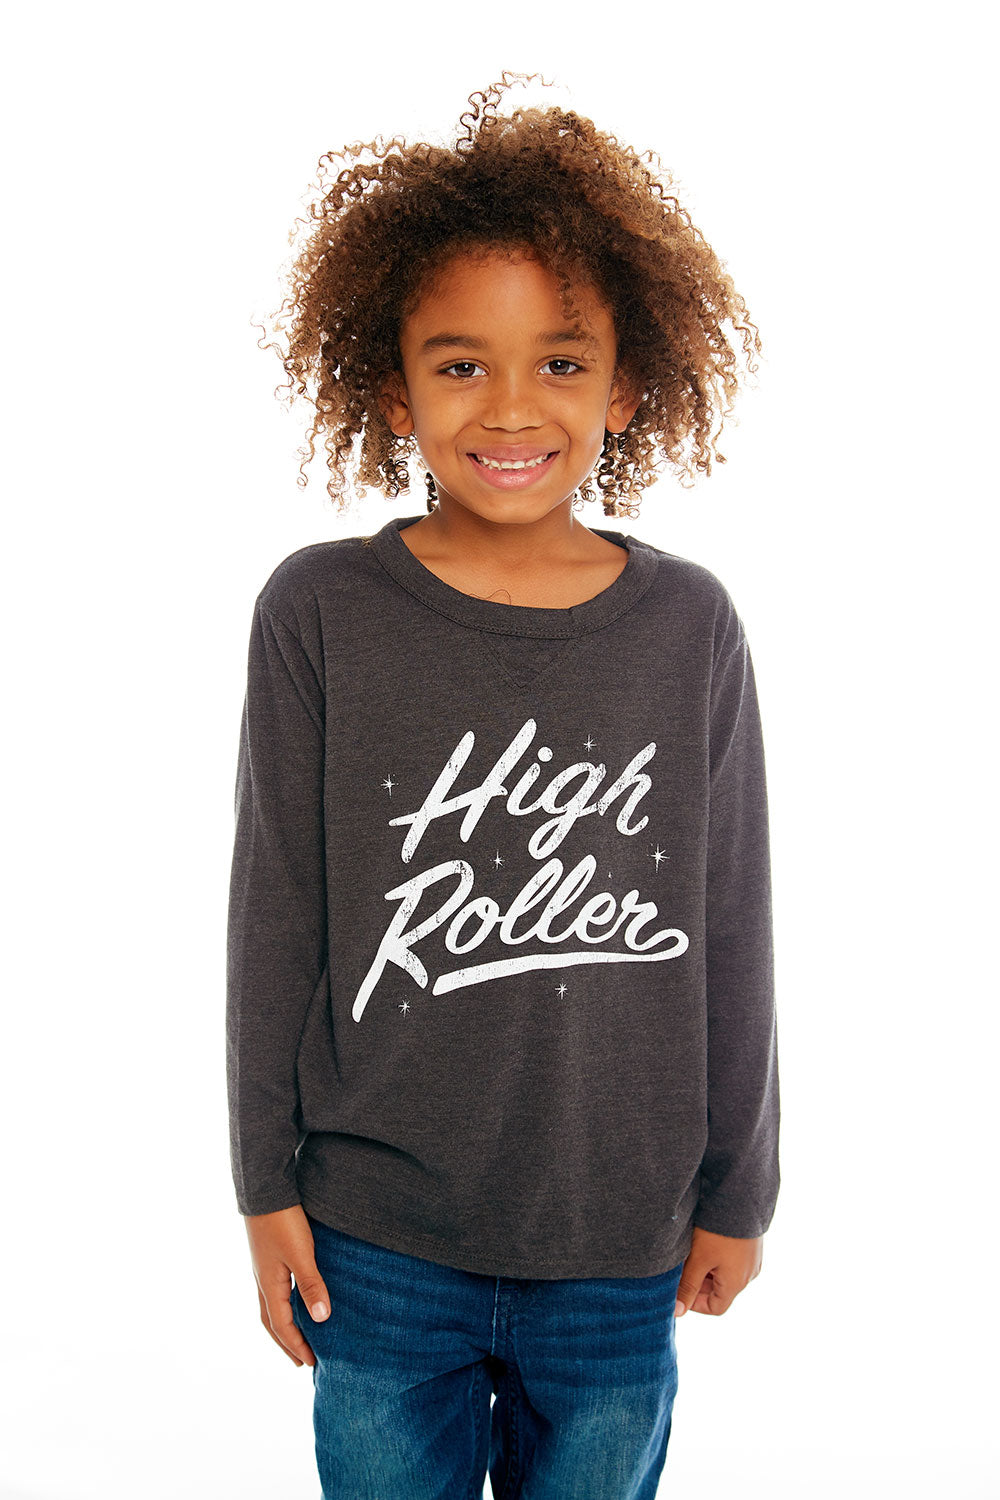 High Roller BOYS chaserbrand4.myshopify.com